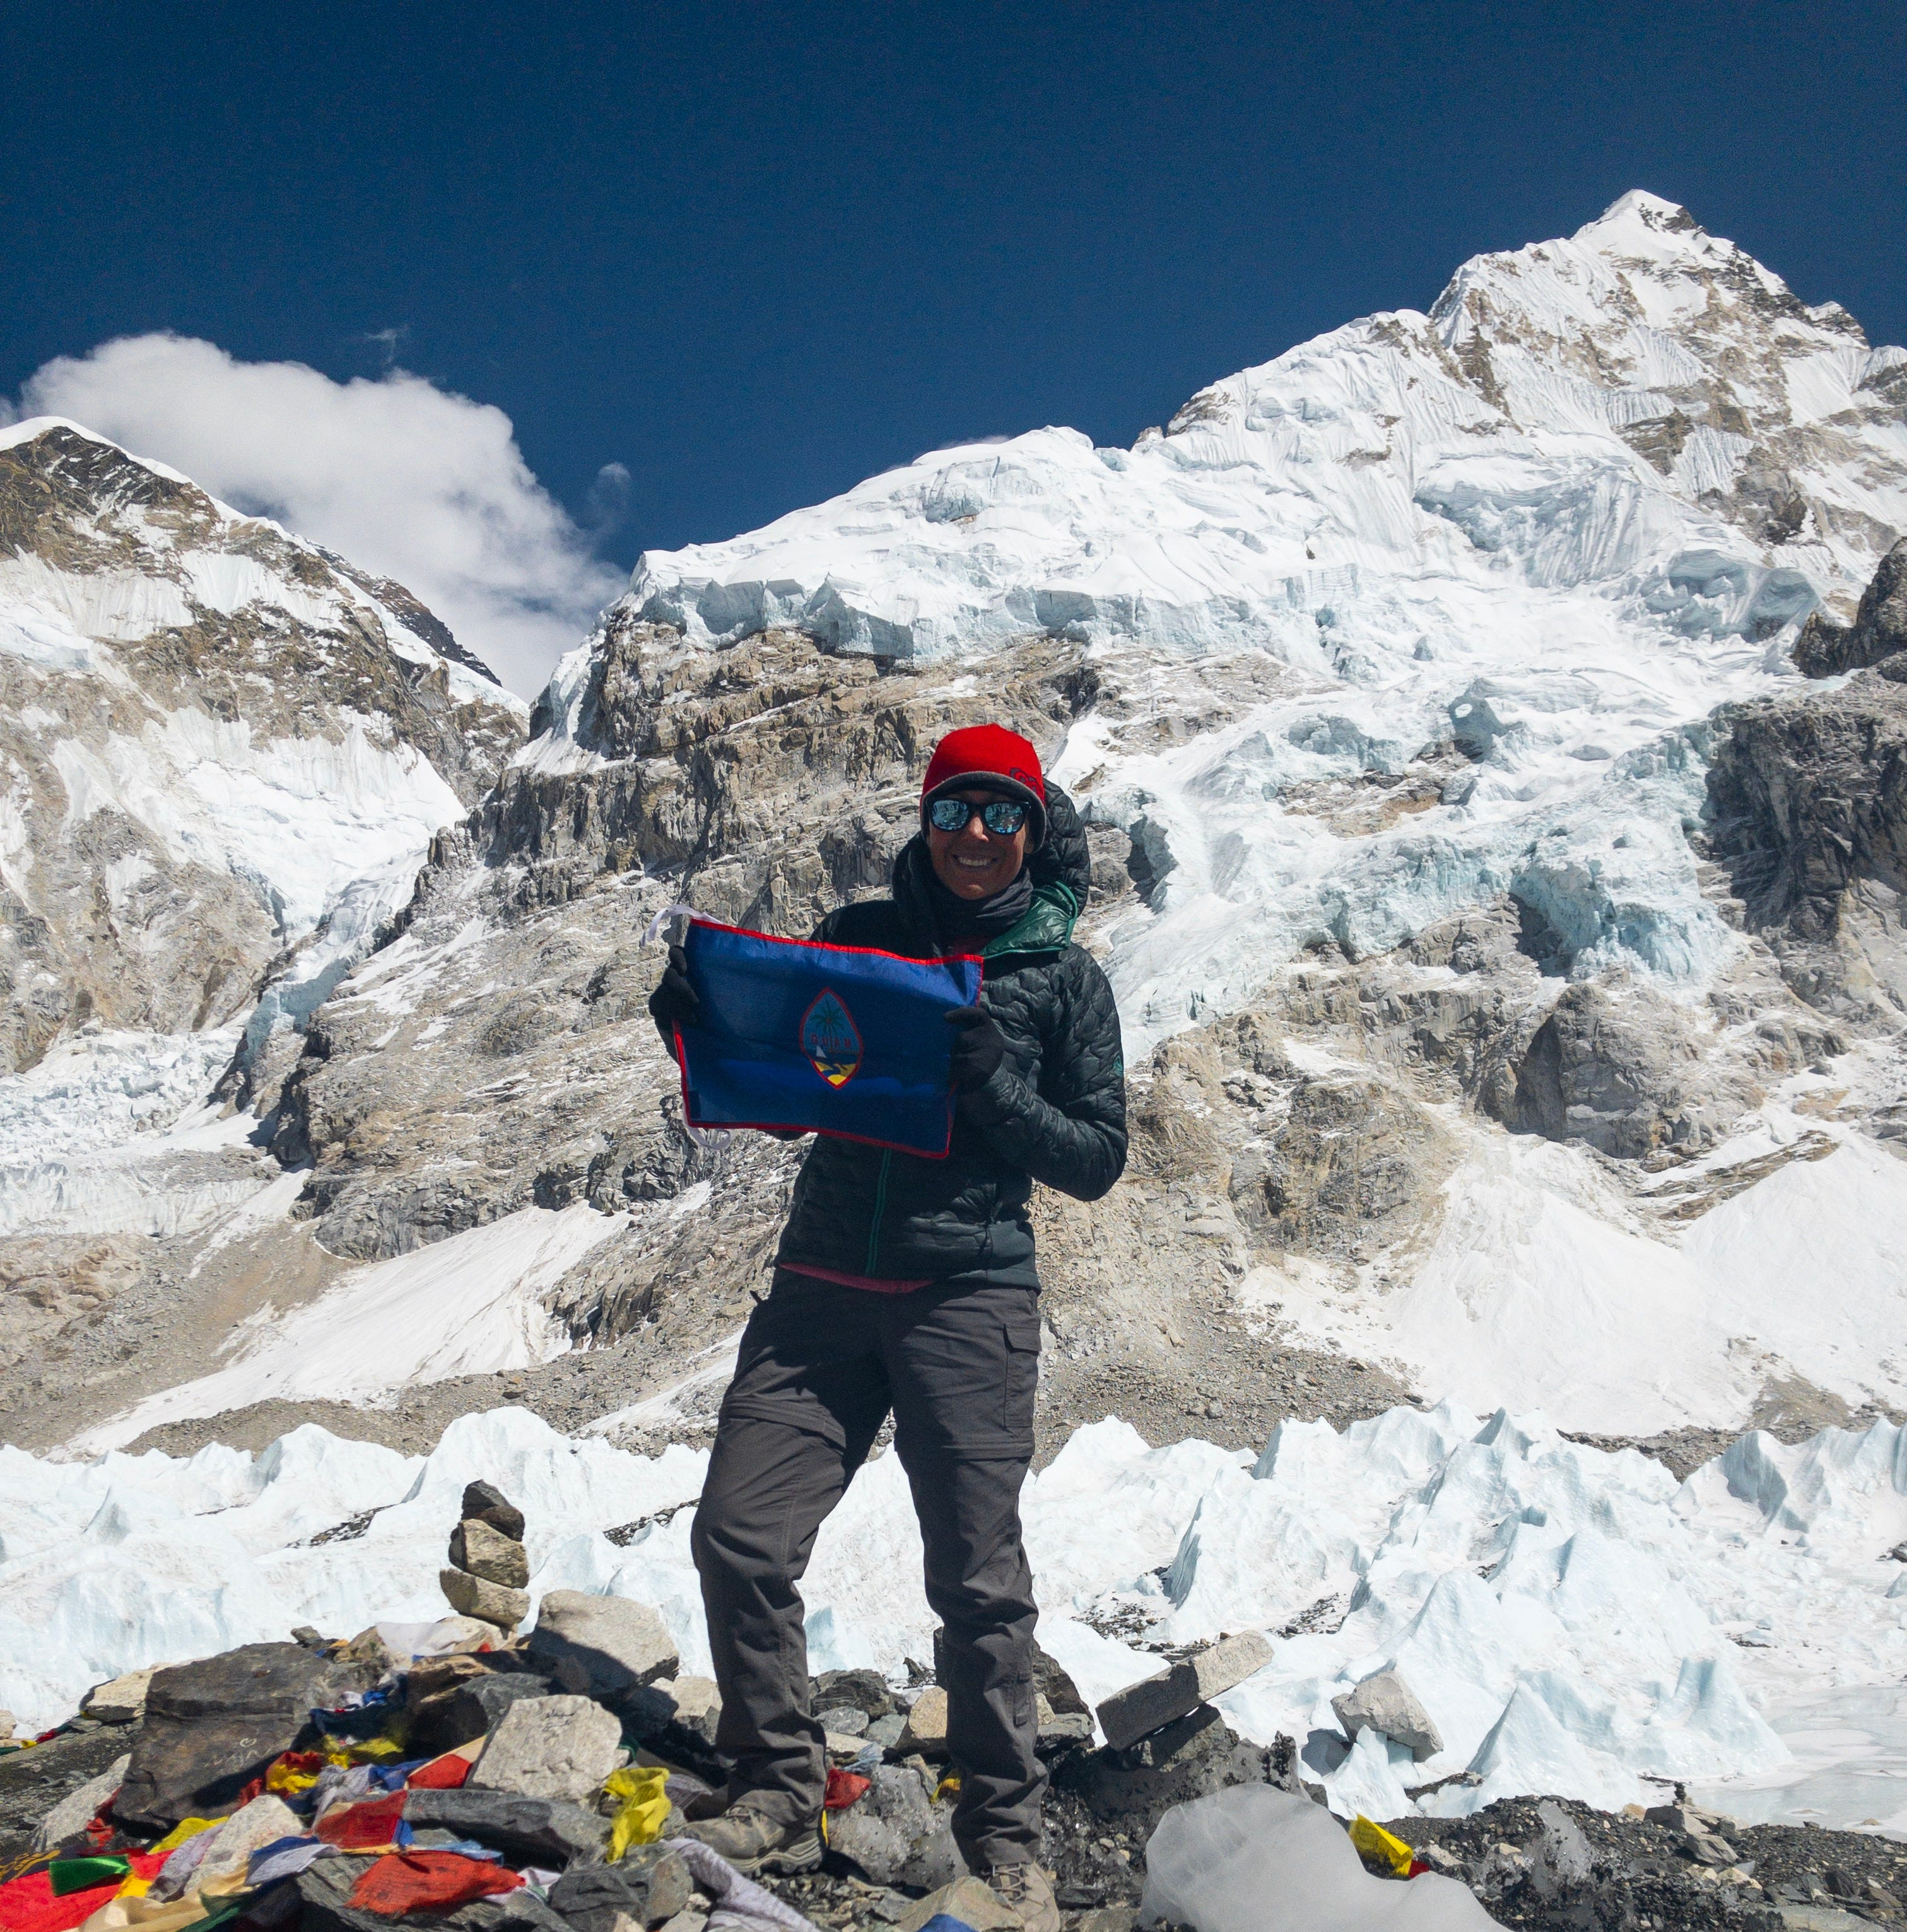 Tiffany Kemppainen, of CHamoru descent, reaches Mount Everest base camp